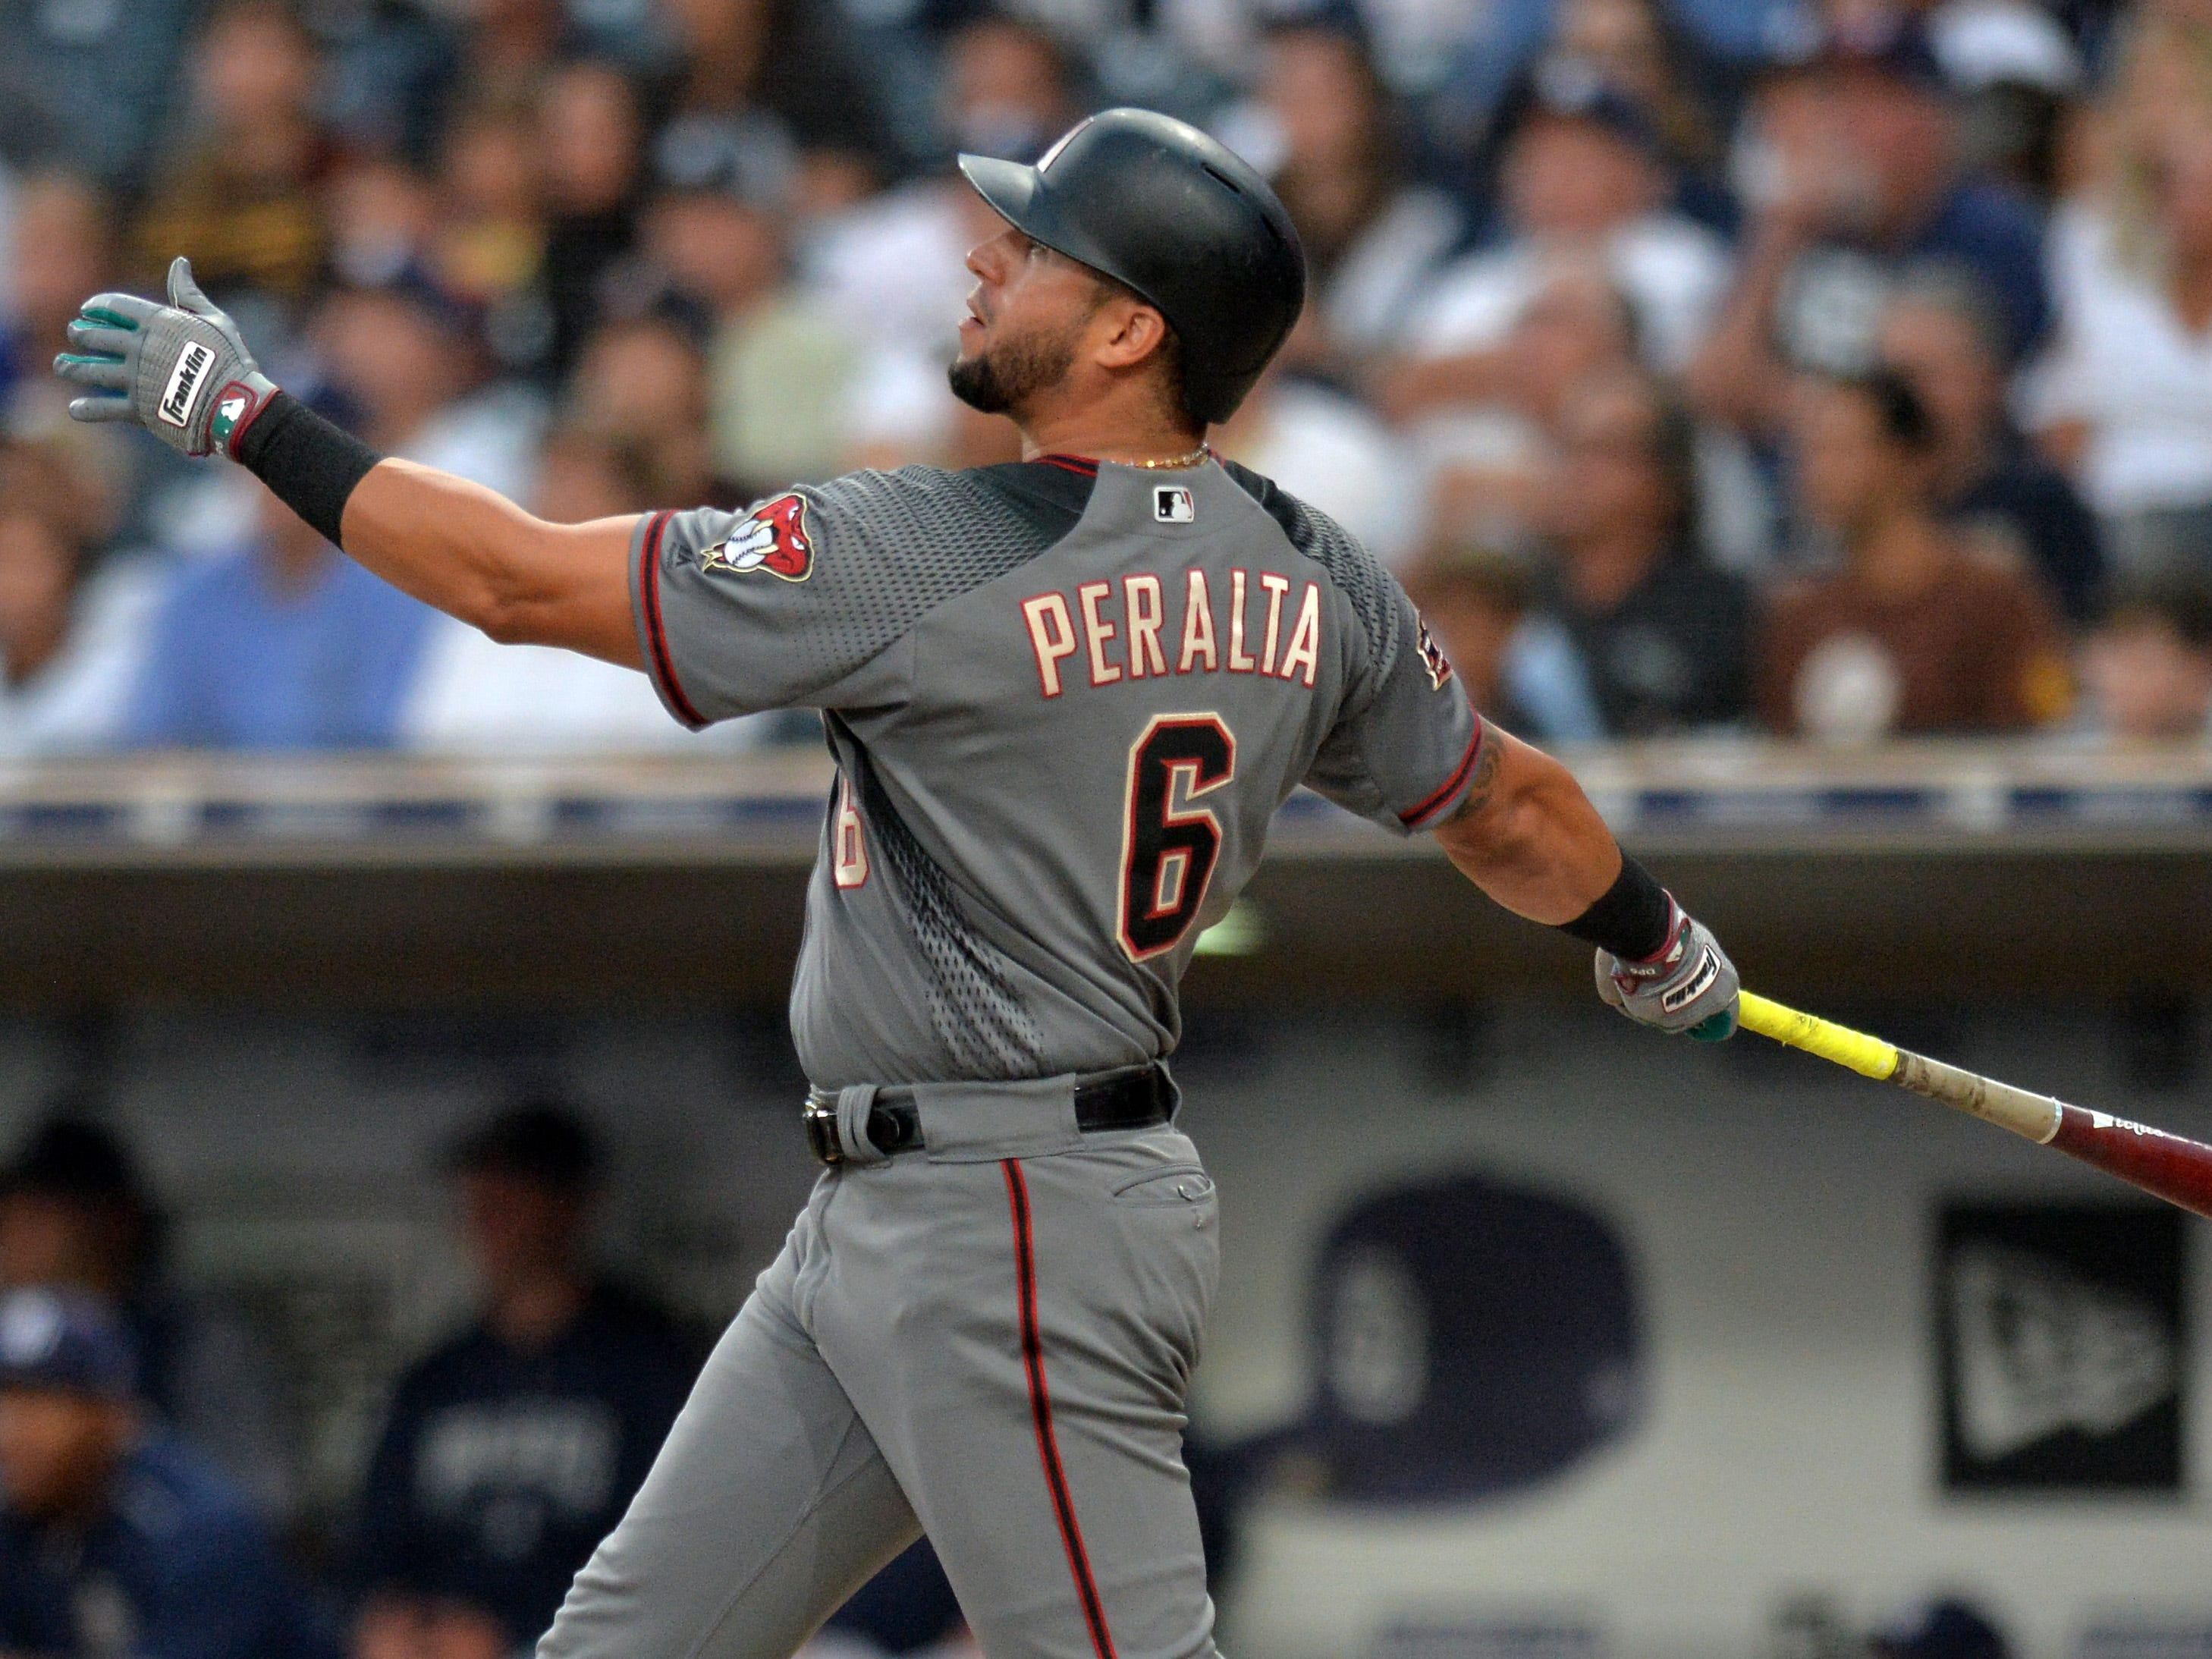 Aug 16, 2018; San Diego, CA, USA; Arizona Diamondbacks left fielder David Peralta (6) hits a three run home run during the first inning against the San Diego Padres at Petco Park.